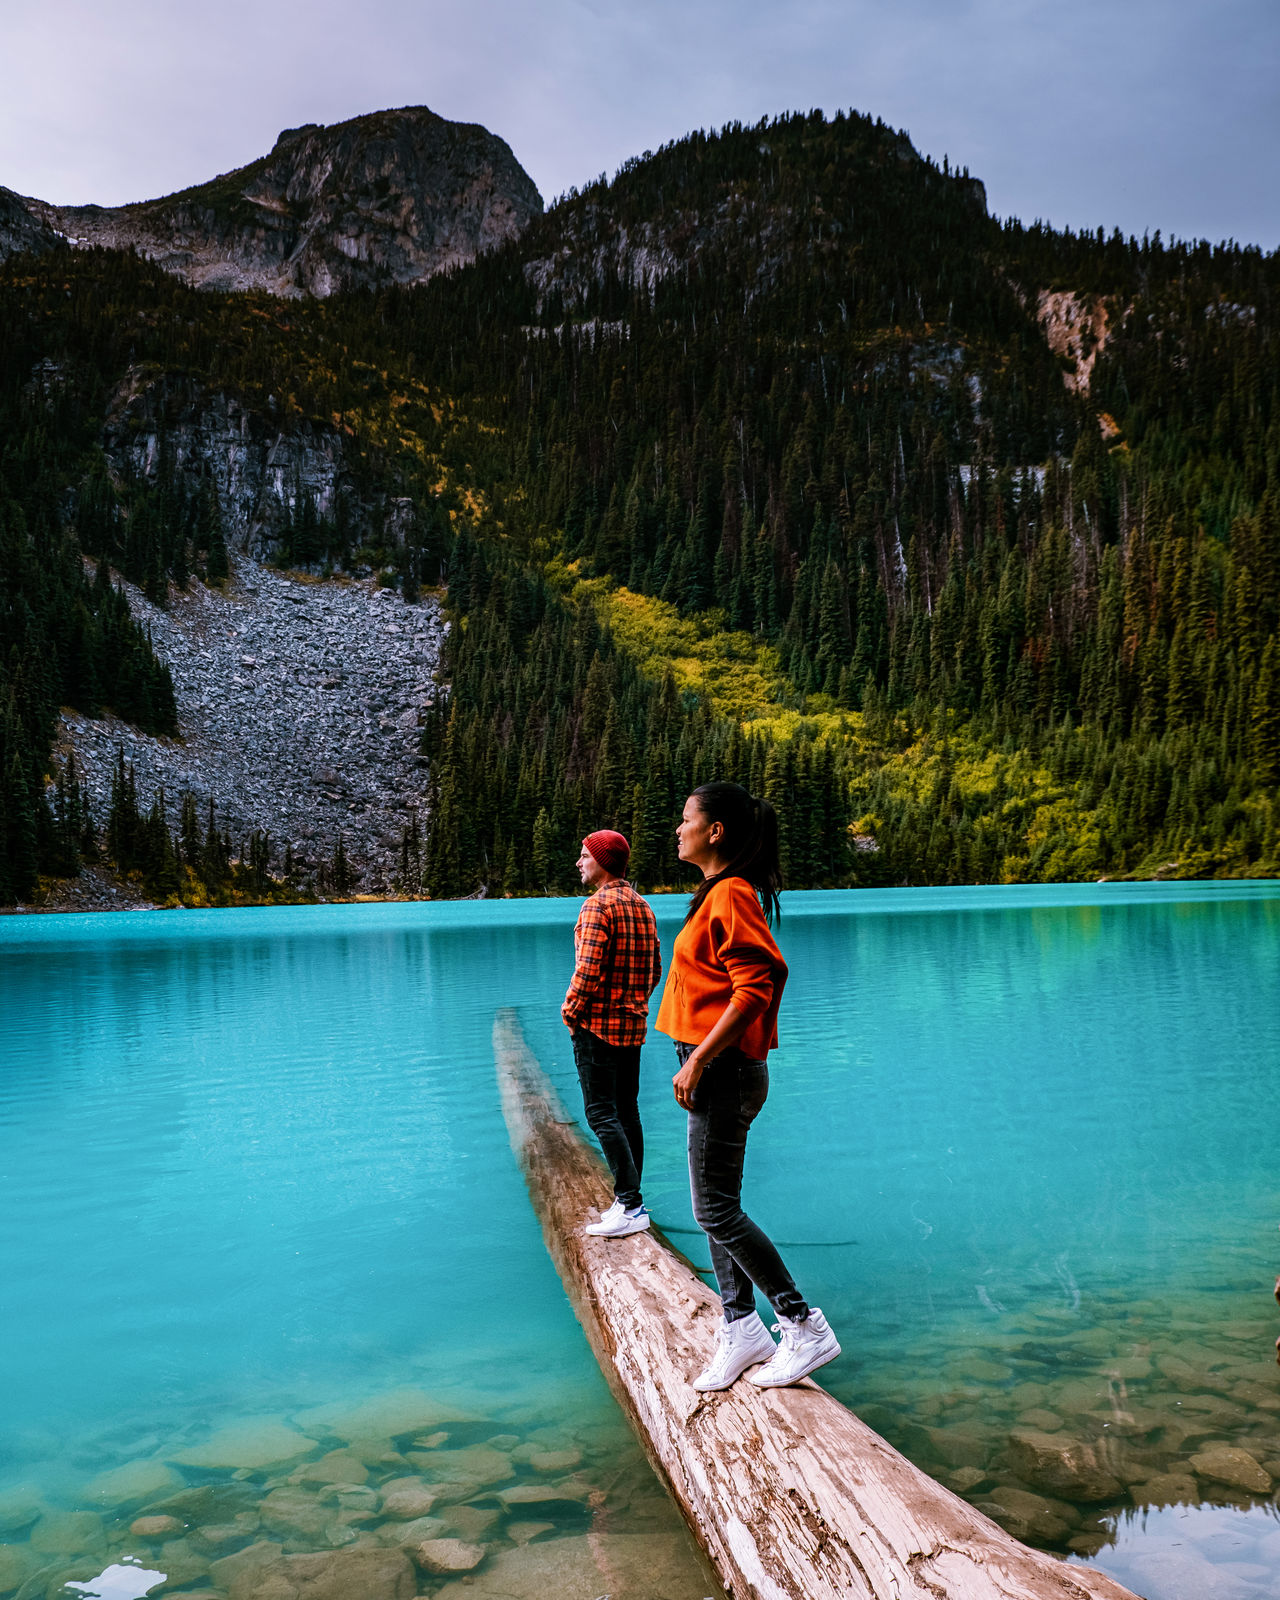 Couple standing on wood by lake against mountain